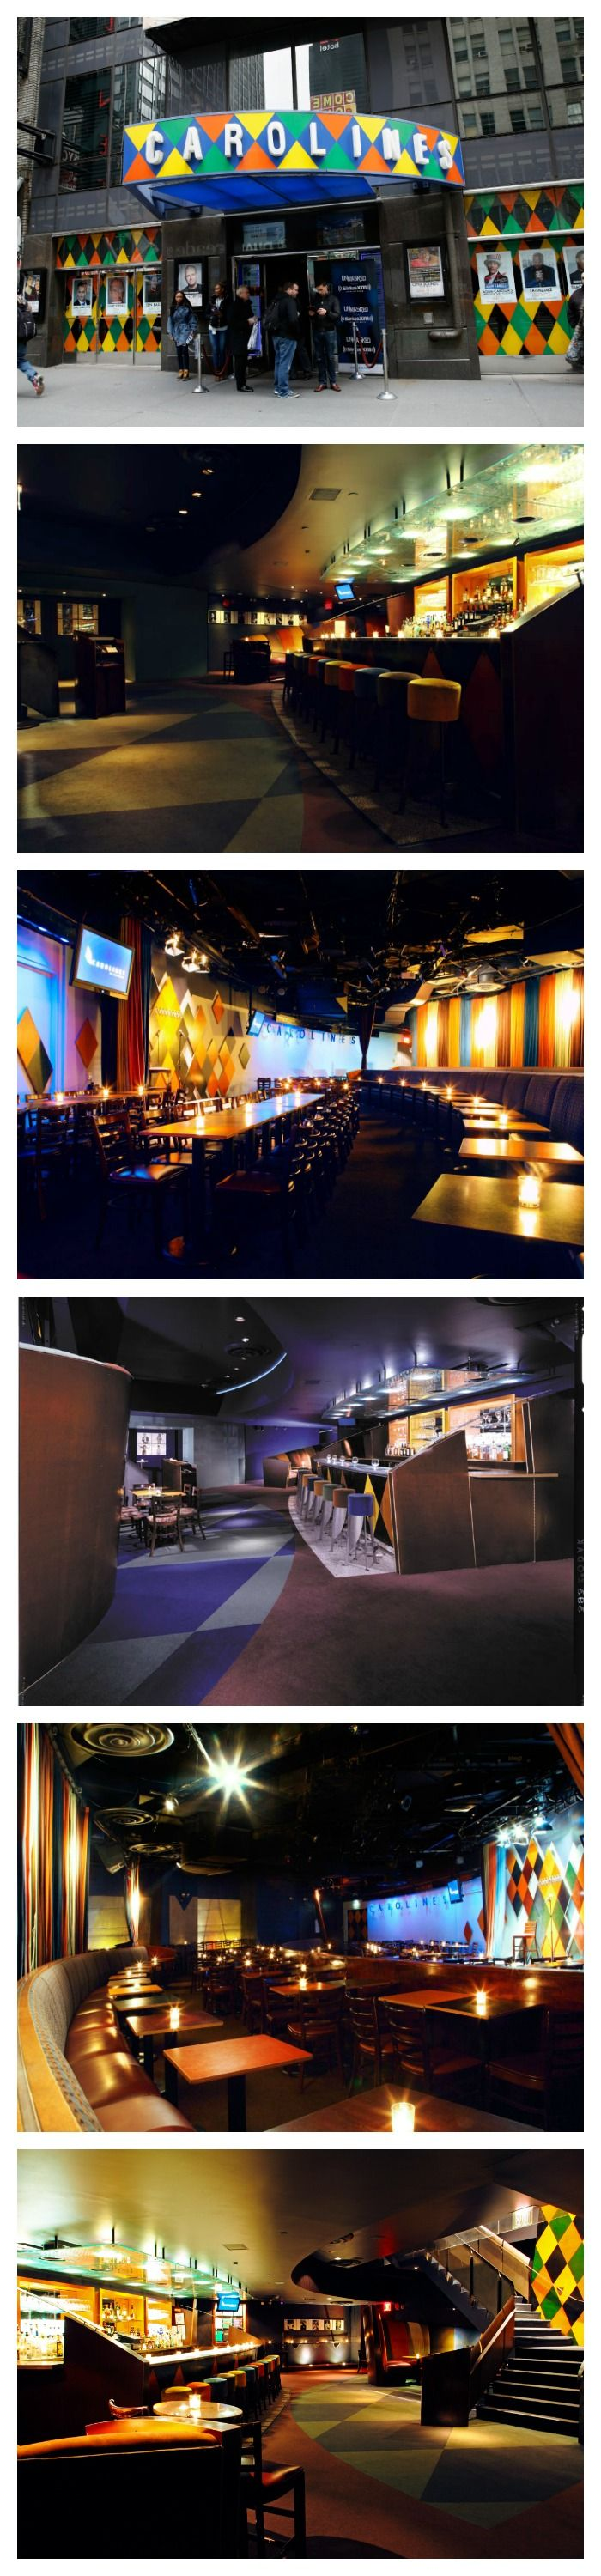 Event Venue in New York, NY | Carolines on Broadway | ShareMySpace